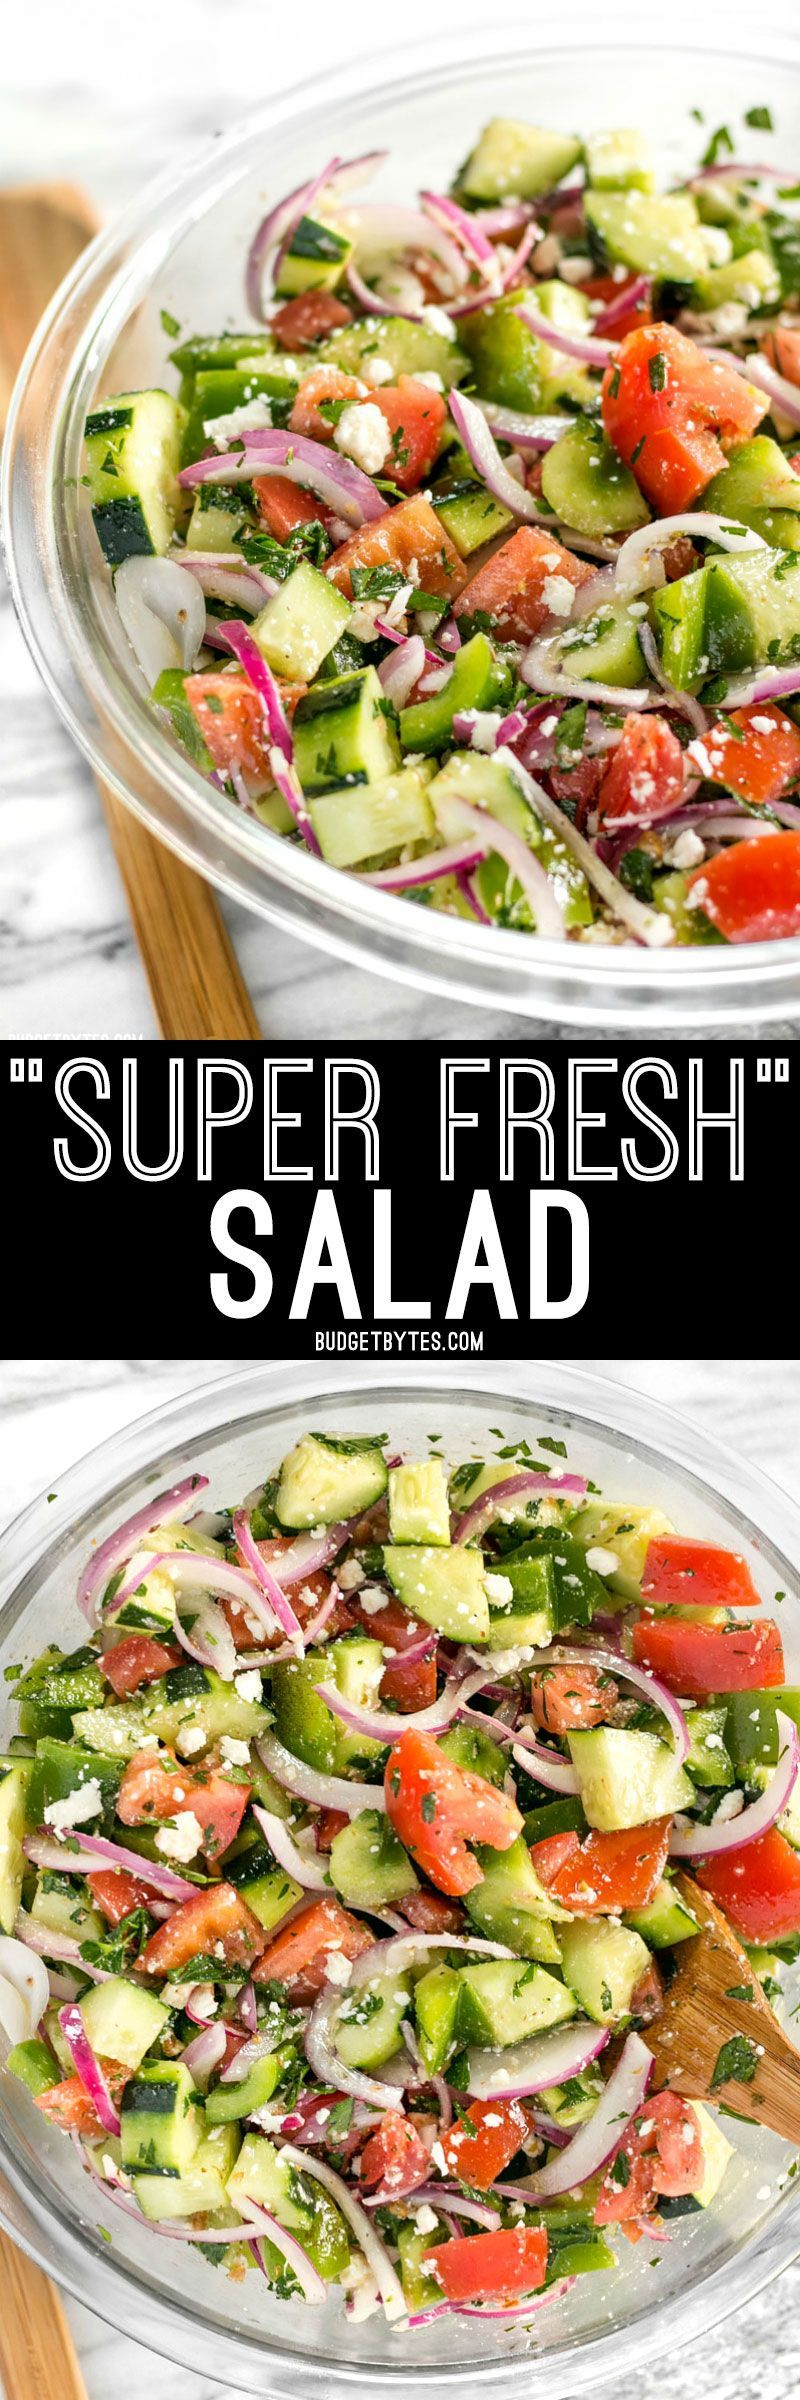 Super Fresh Salad is a cold, crunchy, juicy mix of flavorful vegetables topped with a simple red wine and oregano vinaigrette. Fresh Salad is a cold, crunchy, juicy mix of flavorful vegetables topped with a simple red wine and oregano vinaigrette.